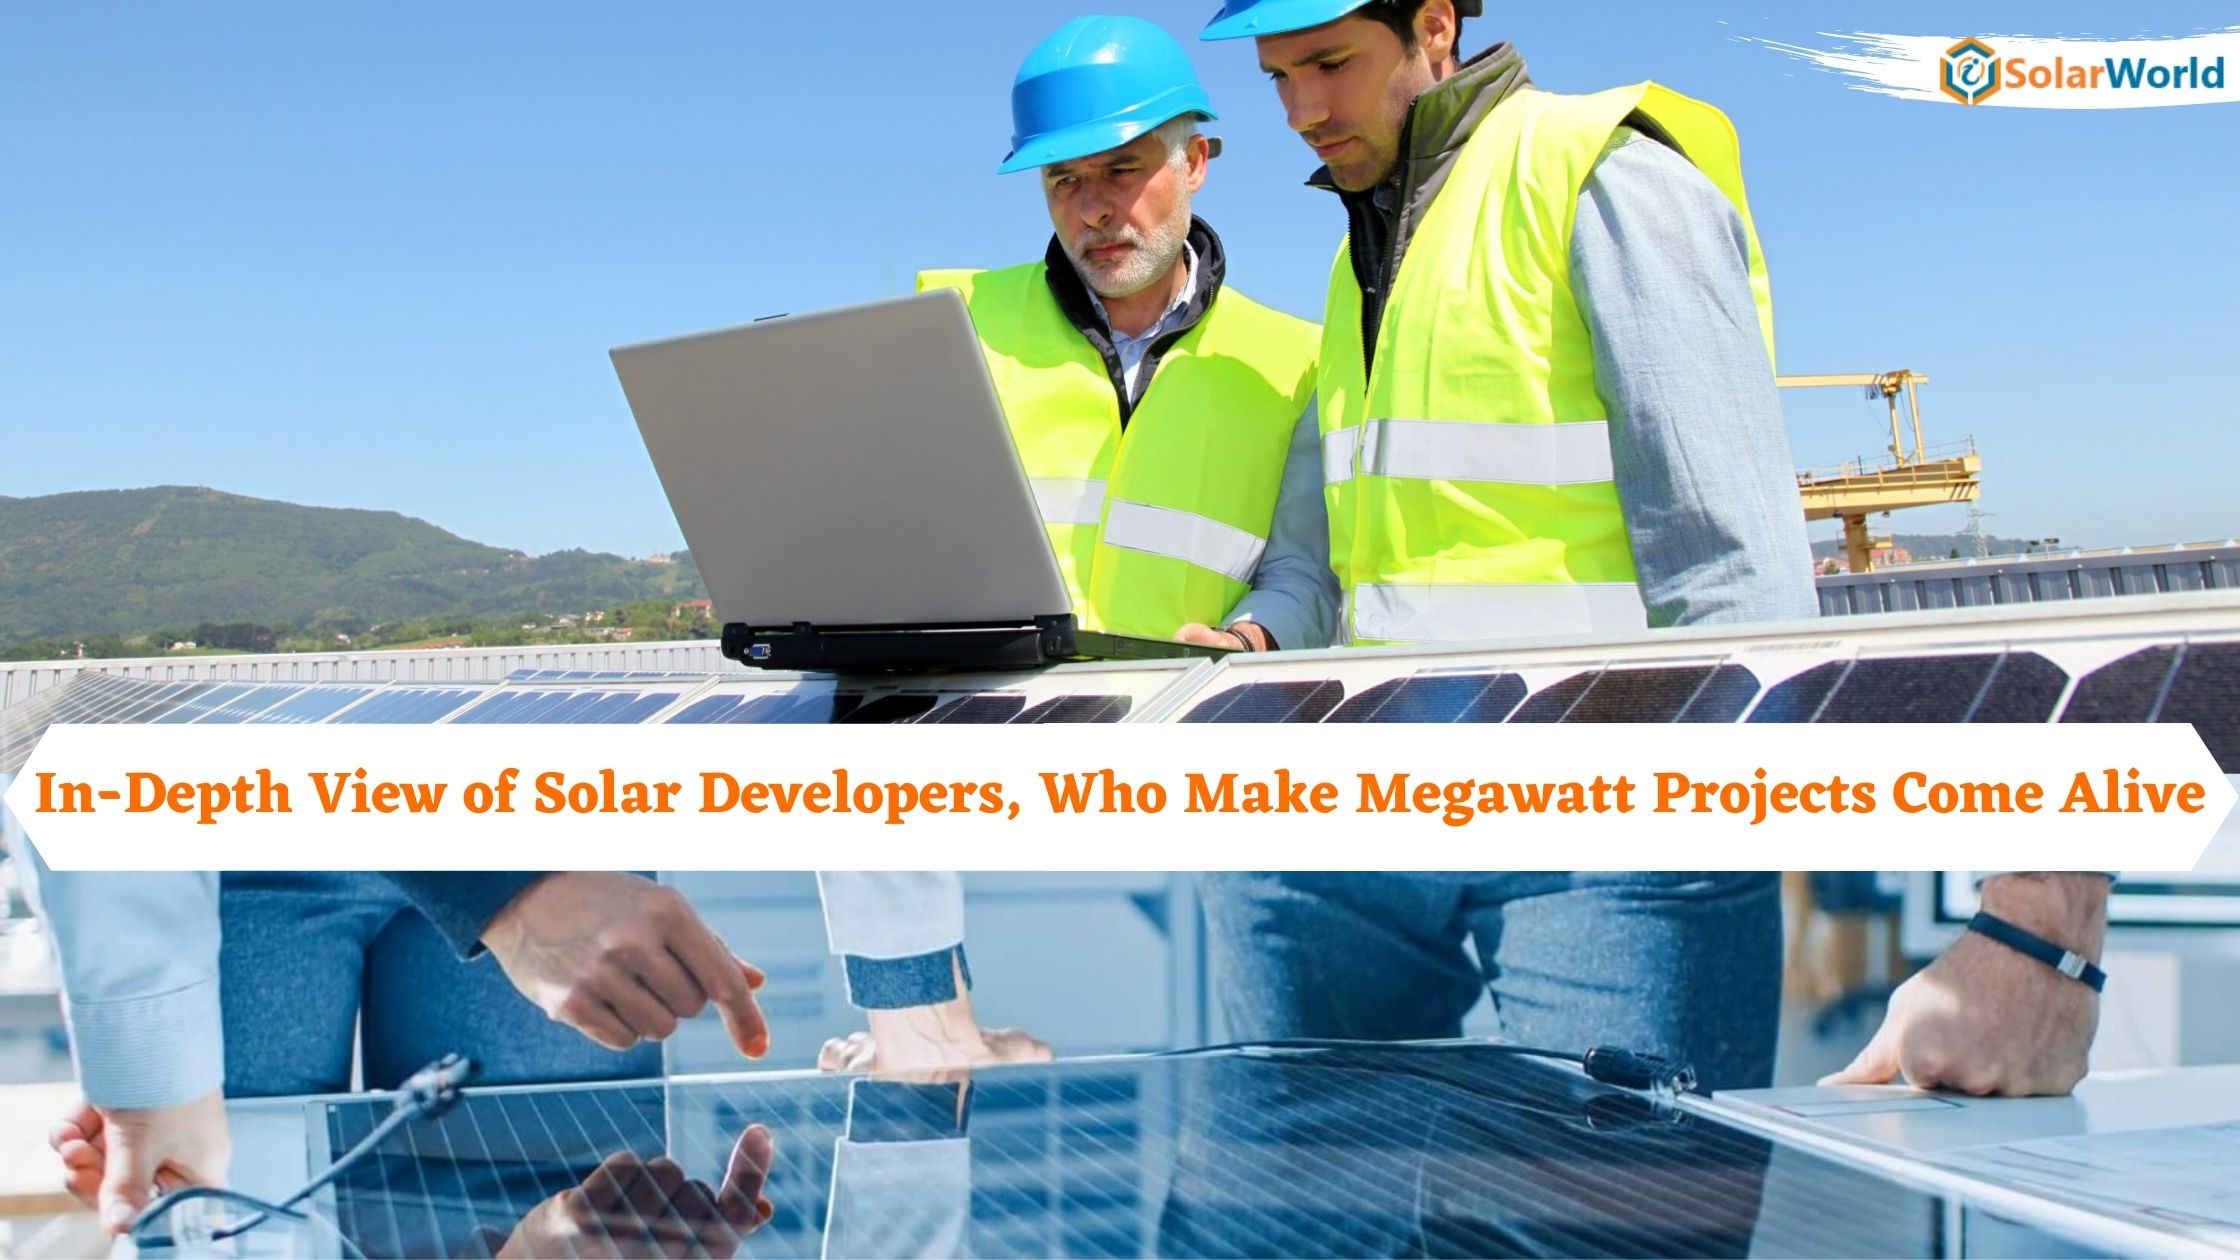 To Know About Larger Solar Project, Here is an In-Depth View of Solar Developers, Who Make Megawatt Projects Come Alive